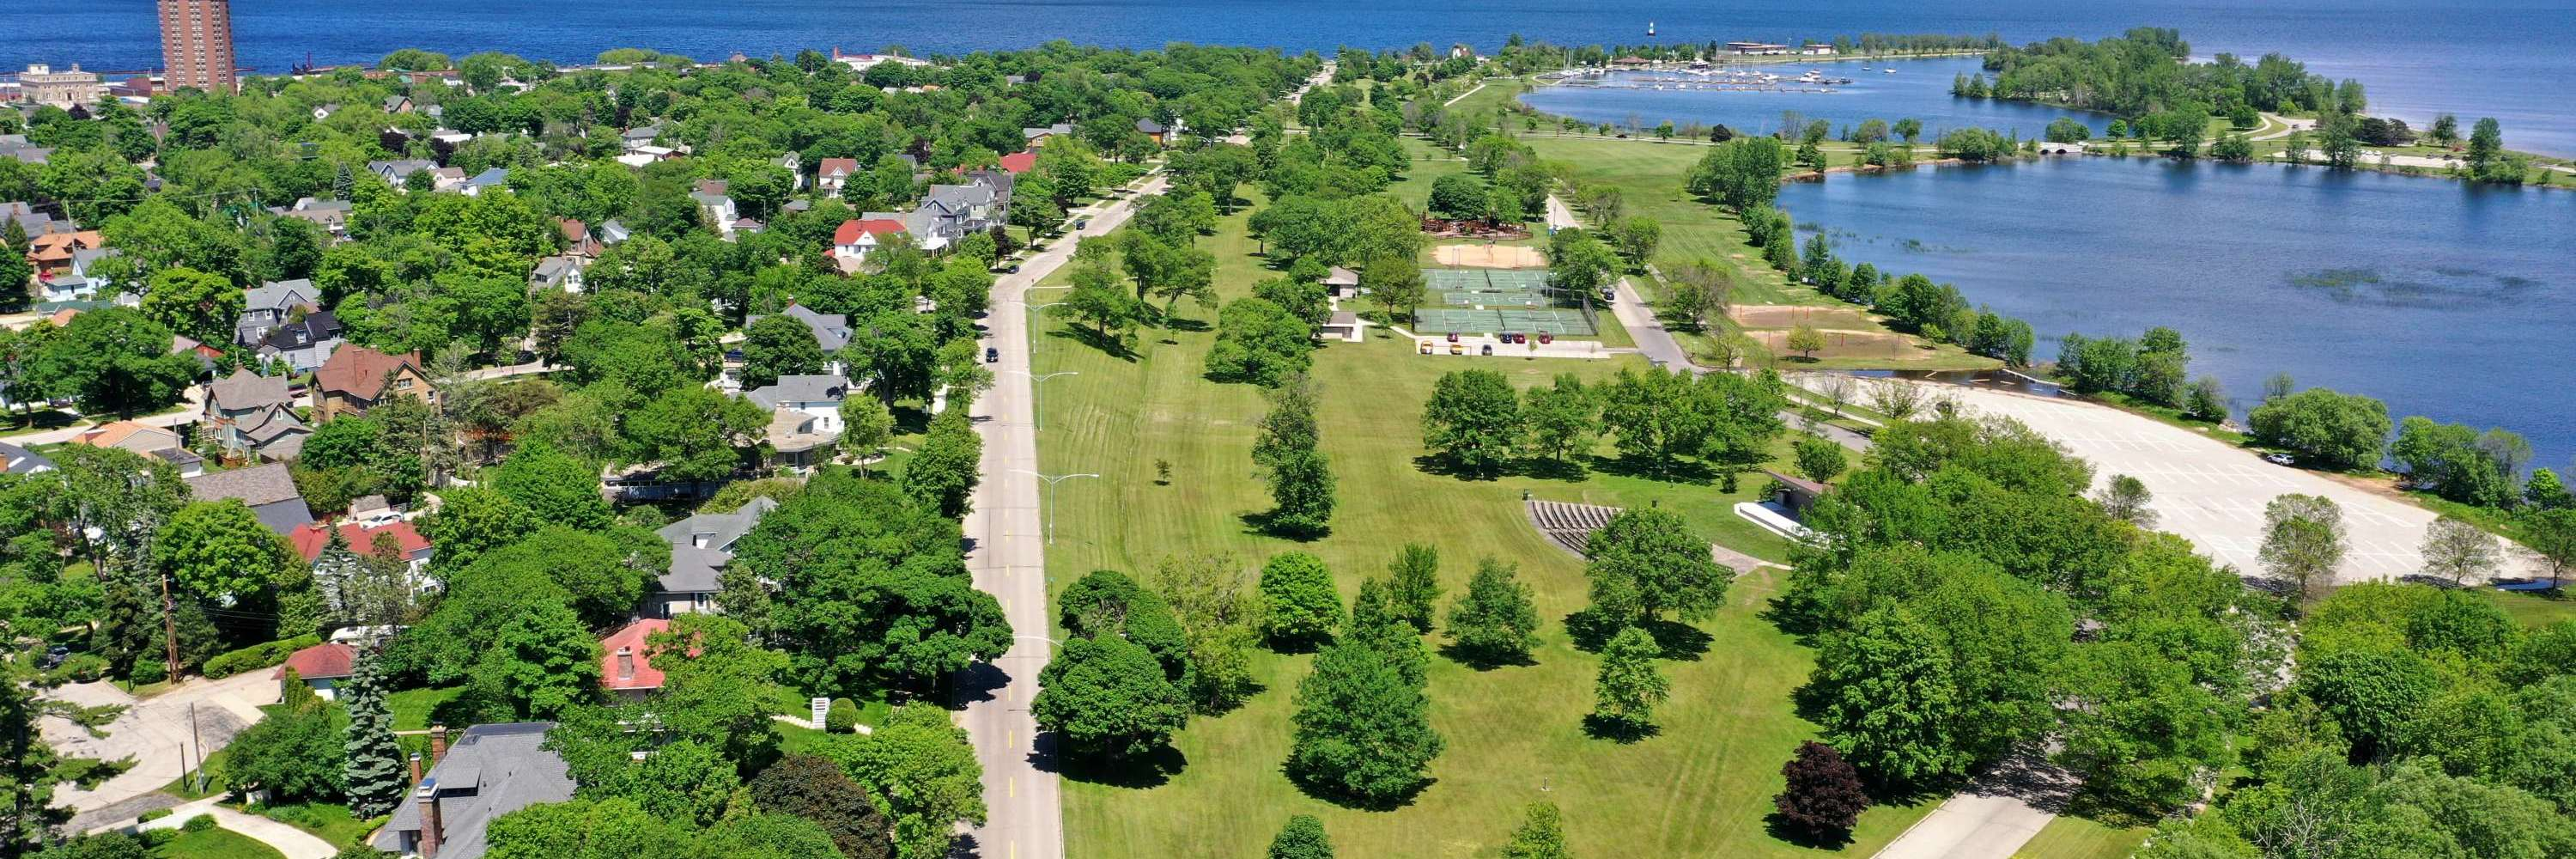 aerial view of escanaba area - cloudy day